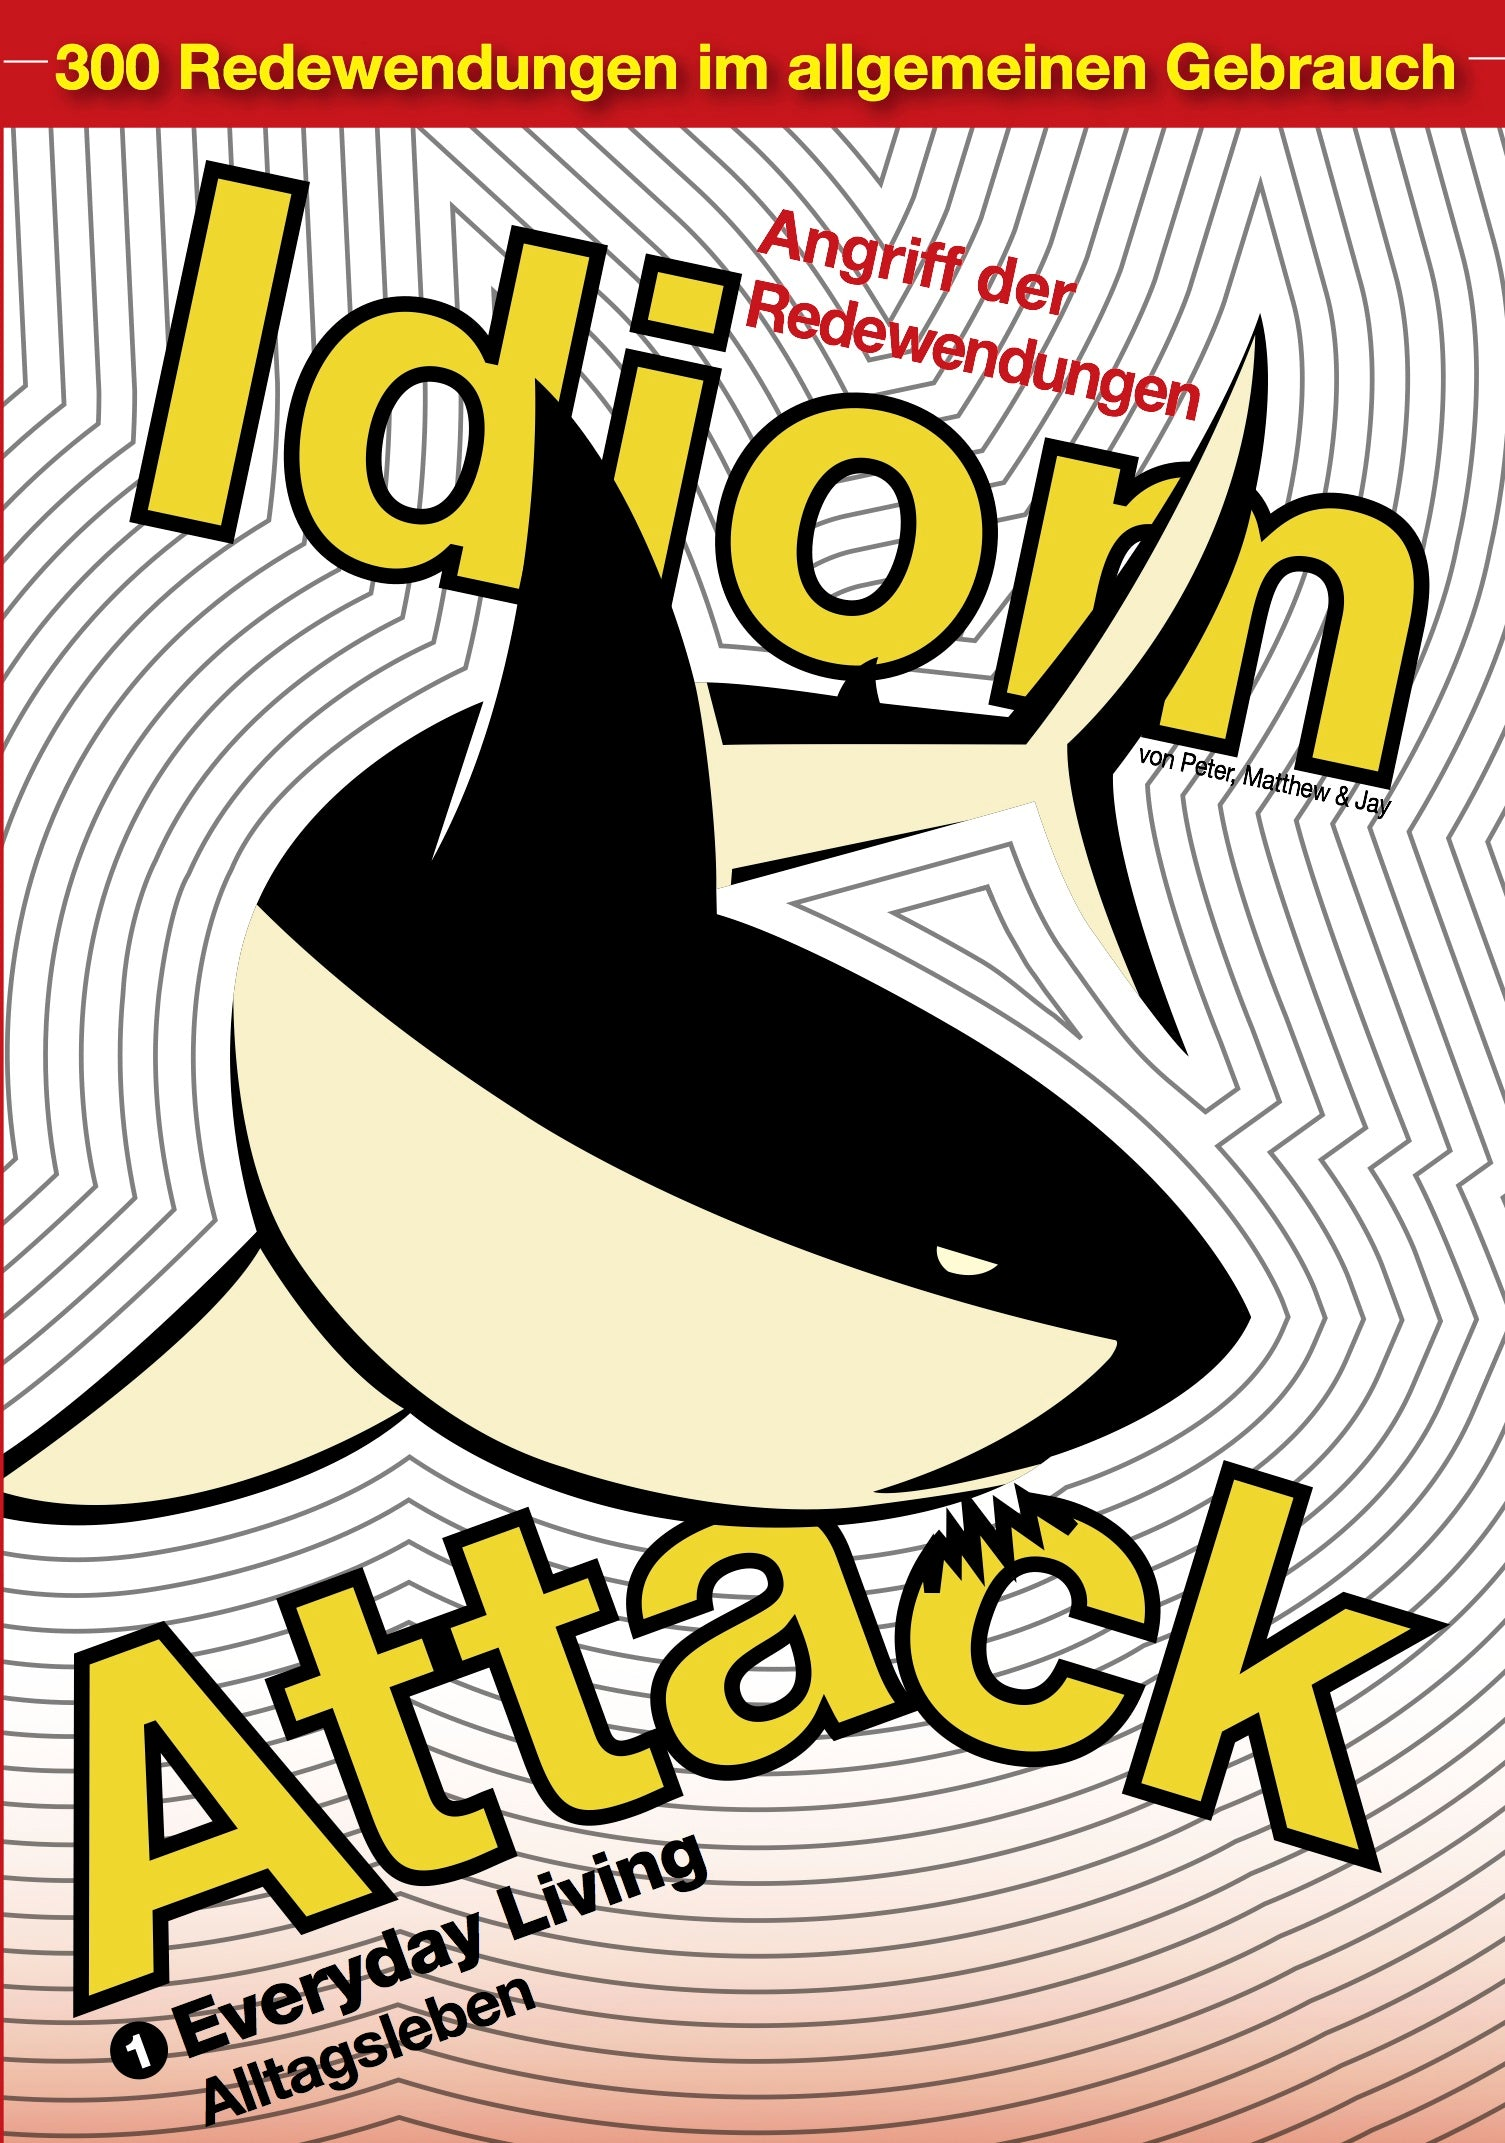 Idiom Attack Vol. 1 - Everyday Living (German Edition) : Angriff der Redewendungen 1 - Alltagsleben: English Idioms for ESL Learners: With 300+ Idioms in 25 Themed Chapters w/ free MP3 at IdiomAttack.com